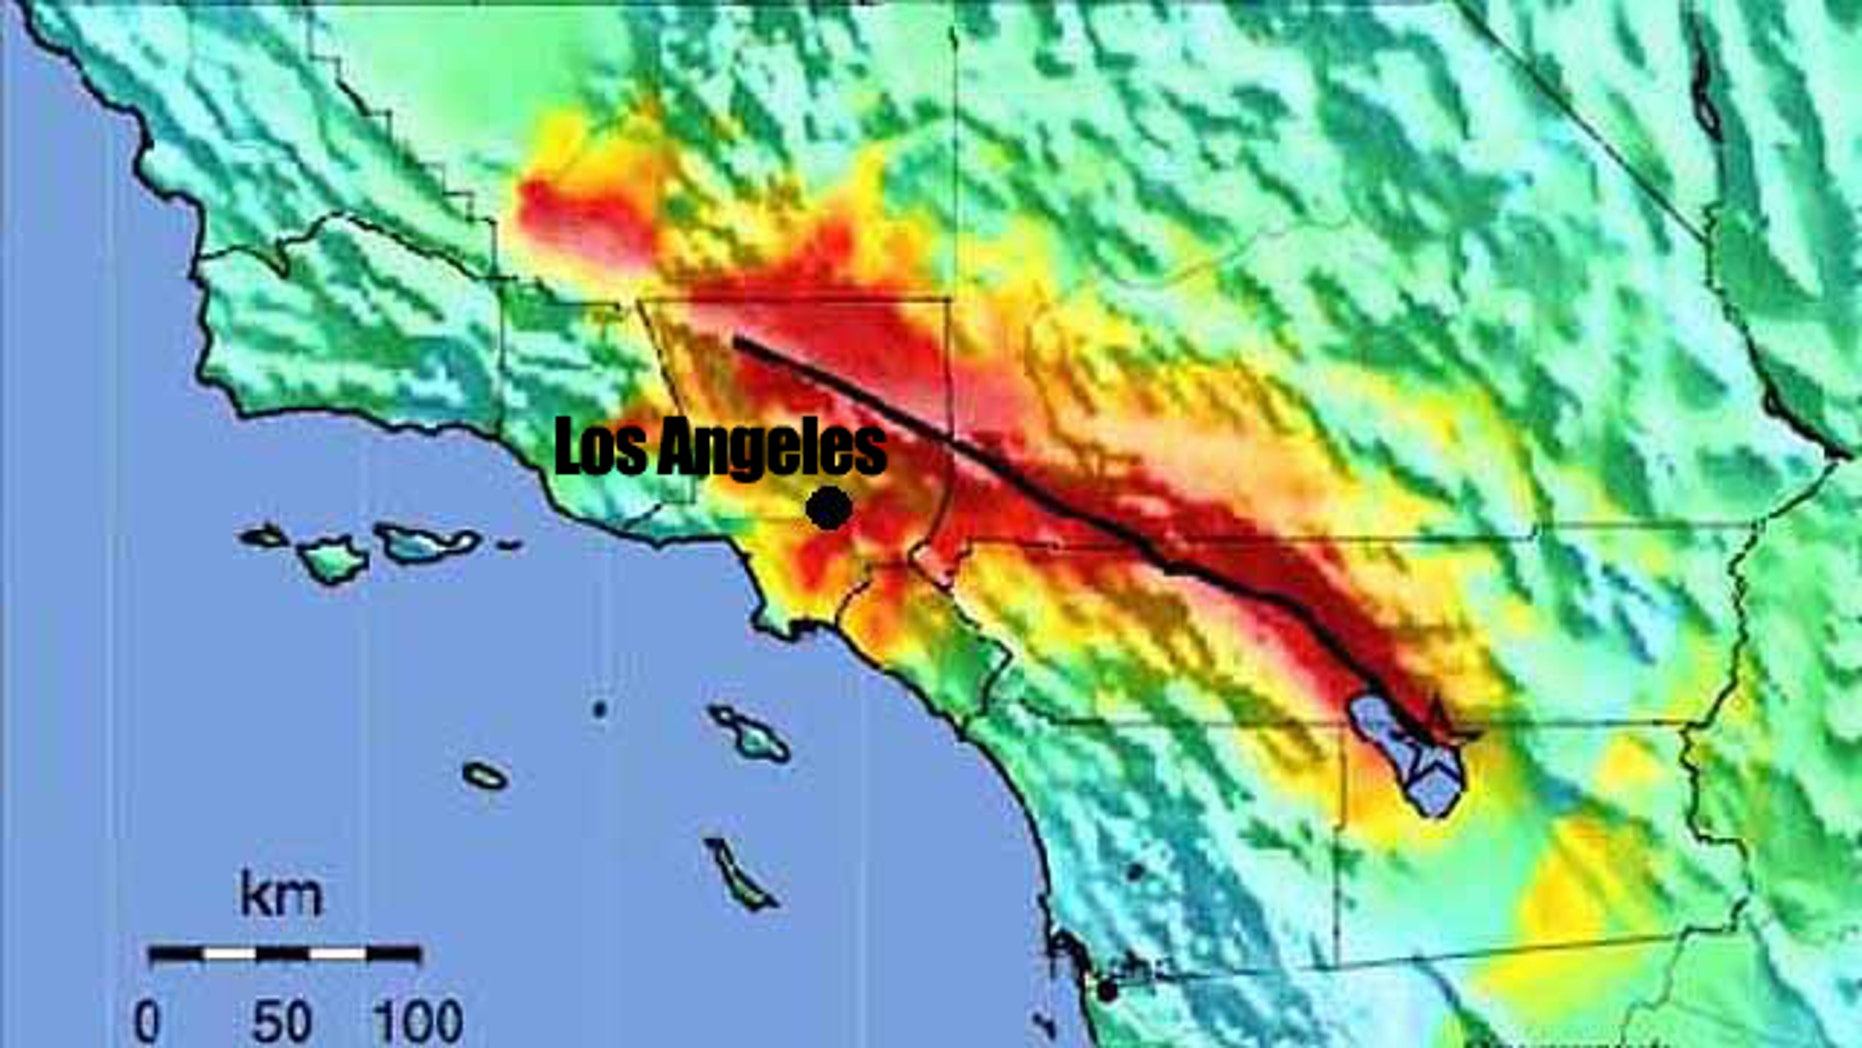 The effects of a magnitude 7.8 earthquake striking the San Andreas fault, modeled here, could cause 1,800 deaths and $213 billion of economic losses, the USGS said. Warmer colors representing areas of greater damage.